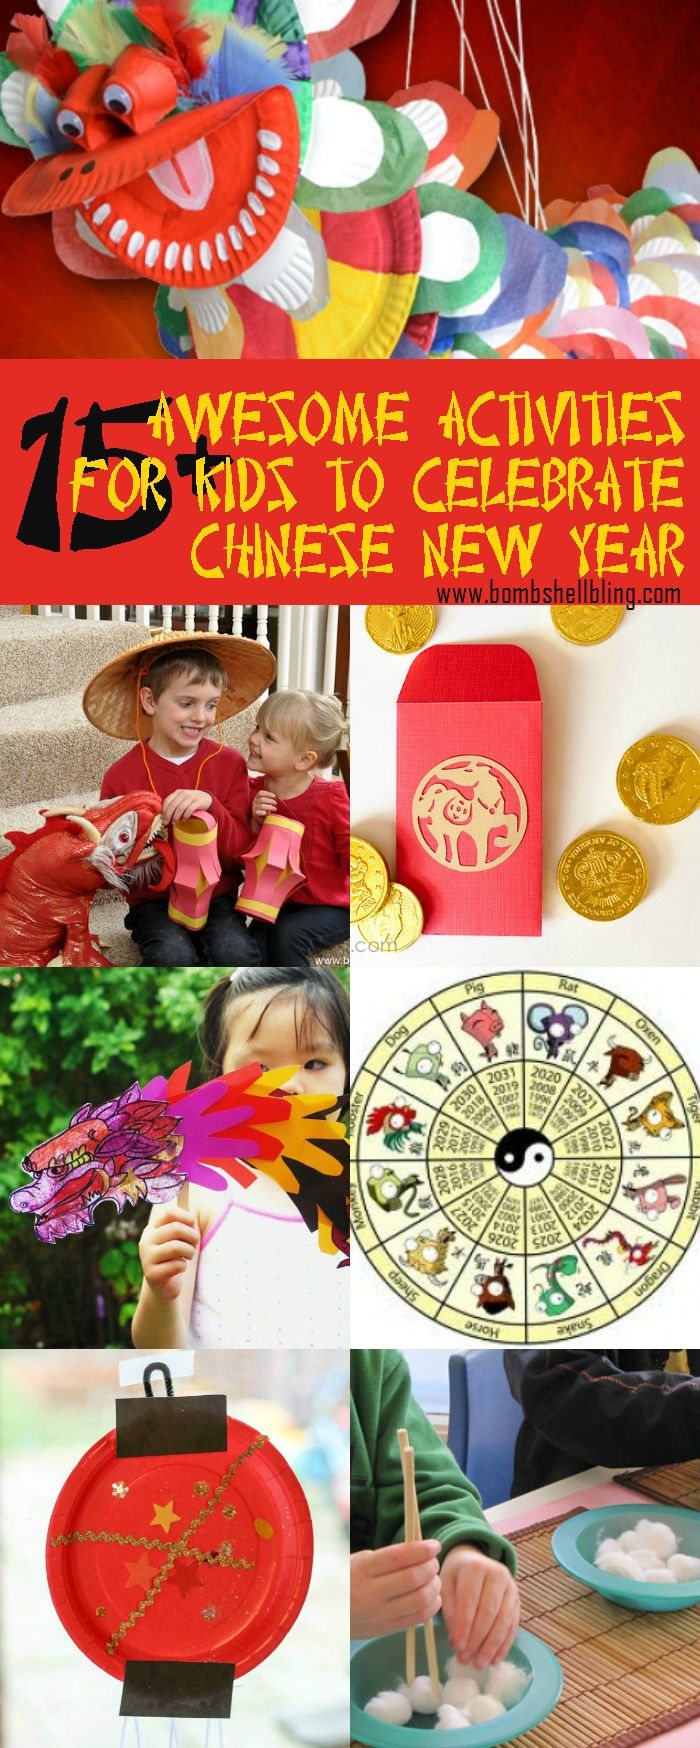 15 Chinese New Year Activities For Kids I Love These Ideas Food Kid Cr Chinese New Year Activities Chinese New Year Crafts For Kids Chinese New Year Kids